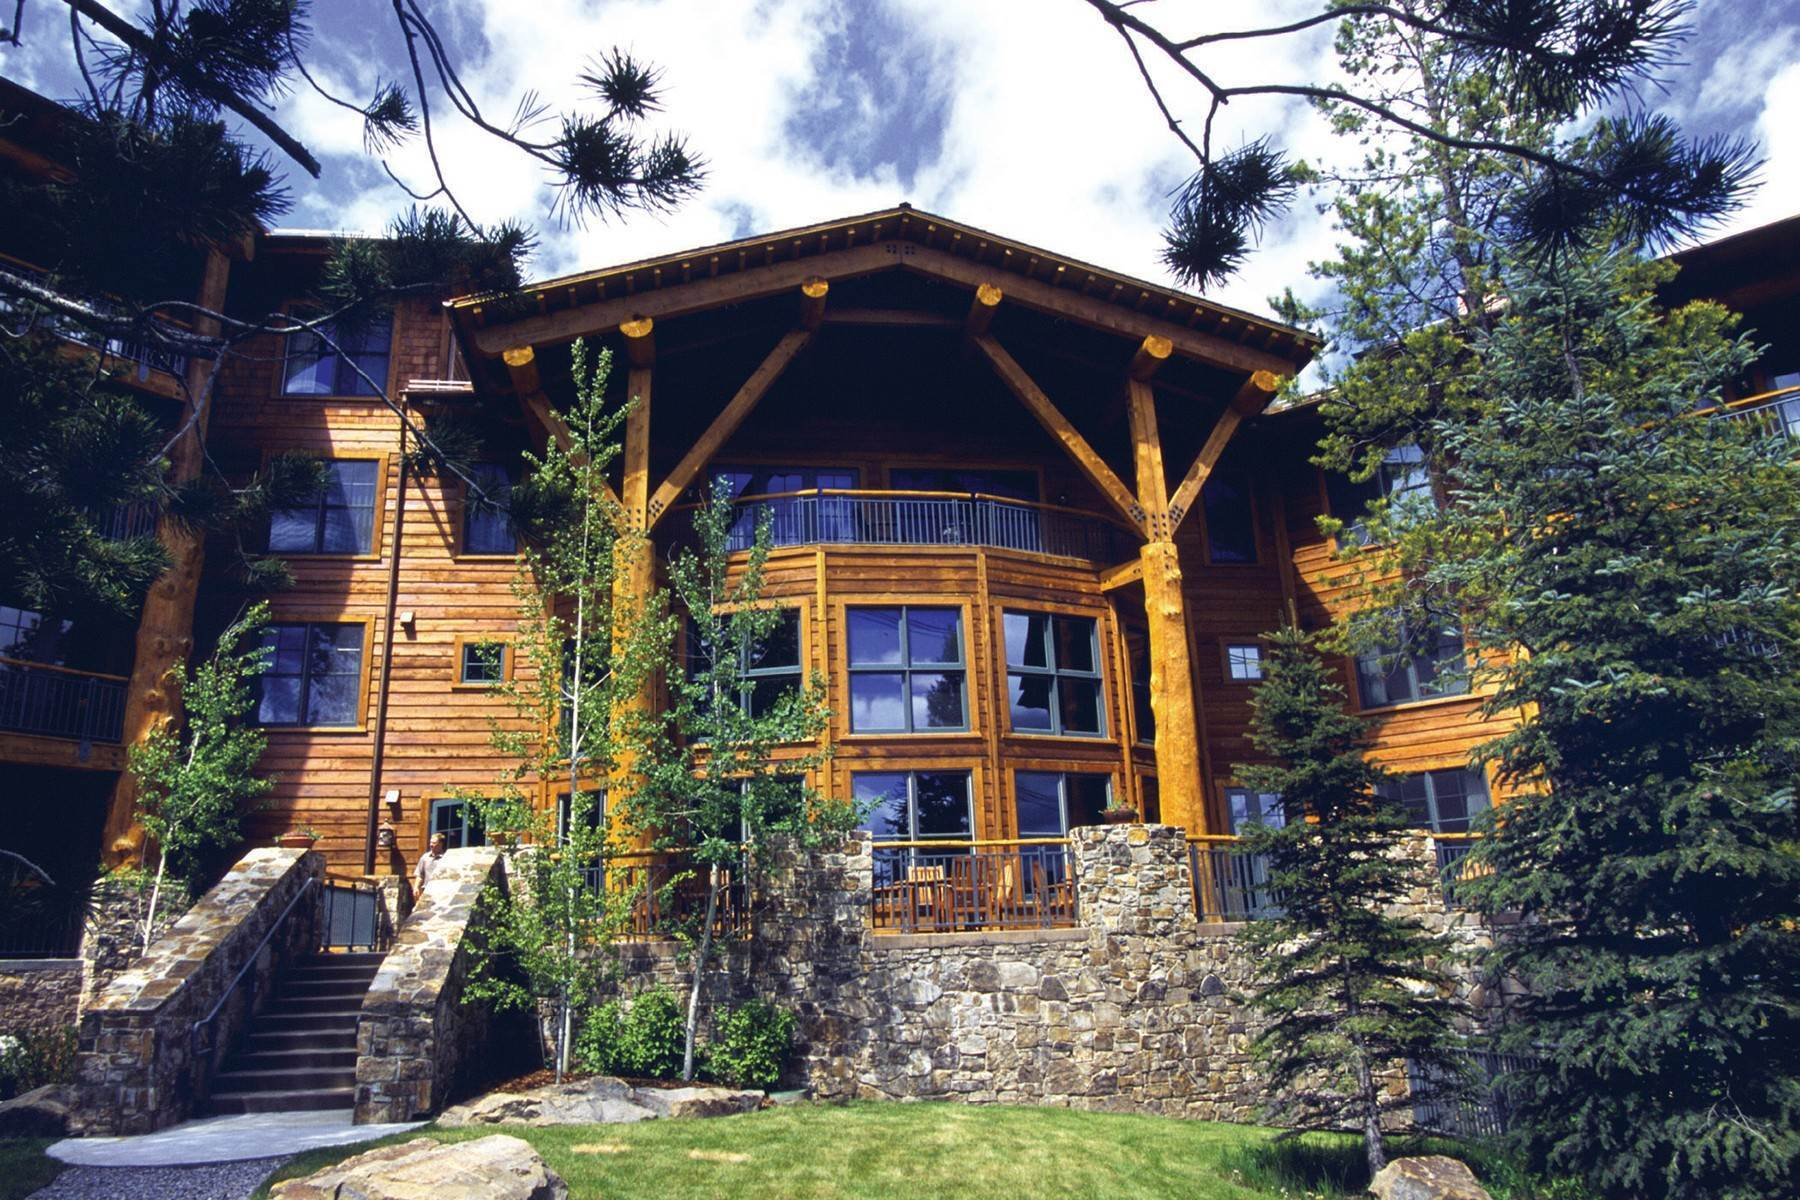 9. fractional ownership prop for Sale at 3340 W Cody Ln, #112 Teton Village, Wyoming 83025 United States